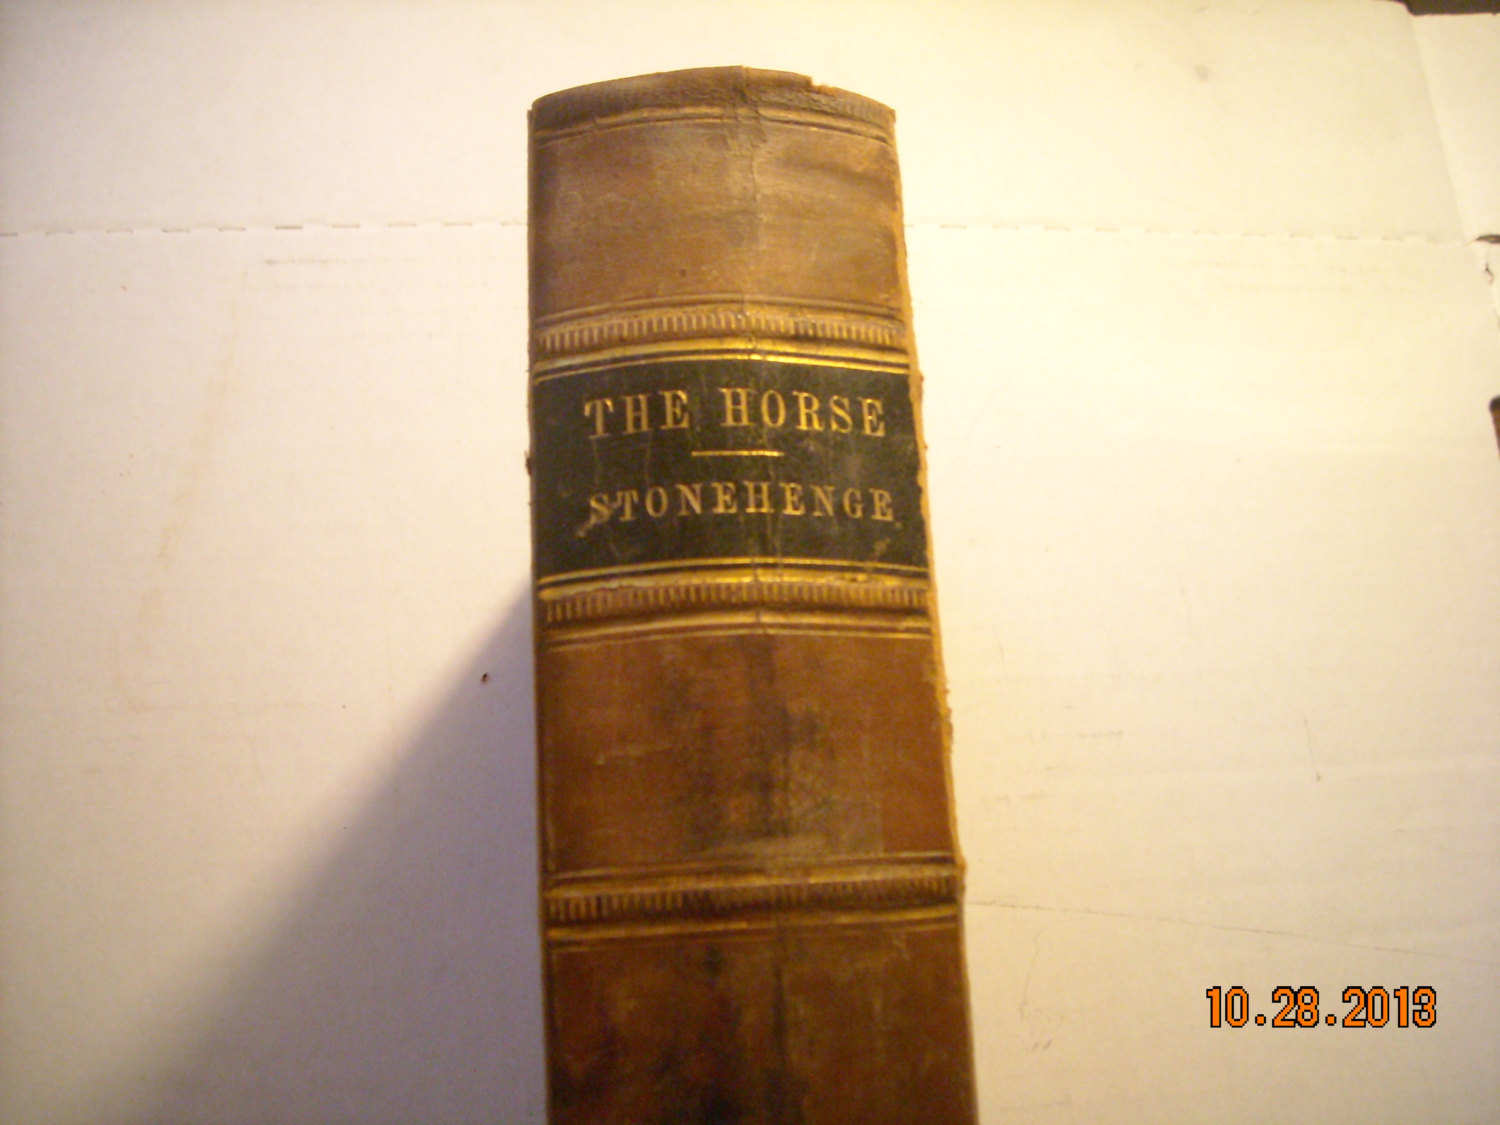 The Horse   in the stable and field  1861 by J.H. Walsh  170 engravings 605 page